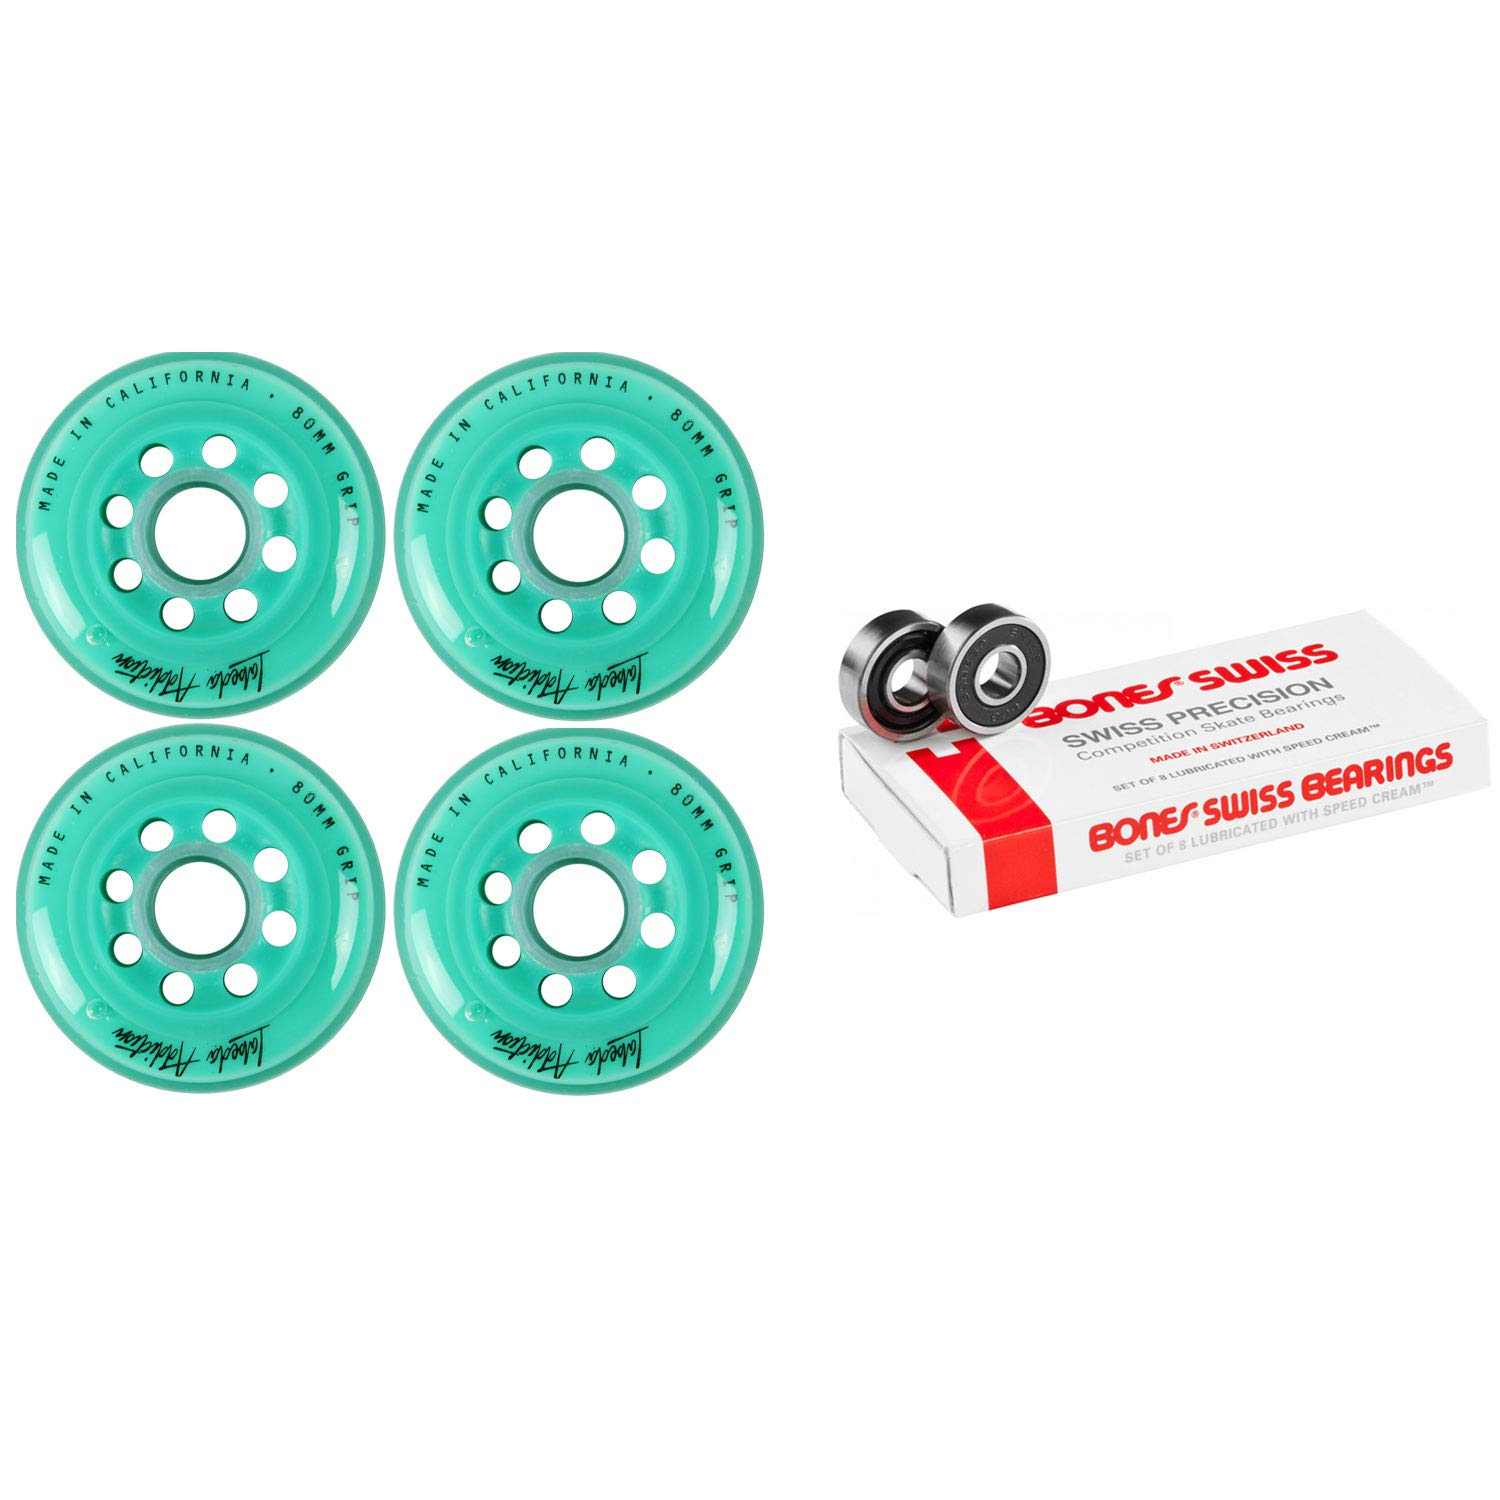 Labeda Inline Roller Hockey Skate Wheels Addiction Teal 80mm 4 Set Bones Swiss